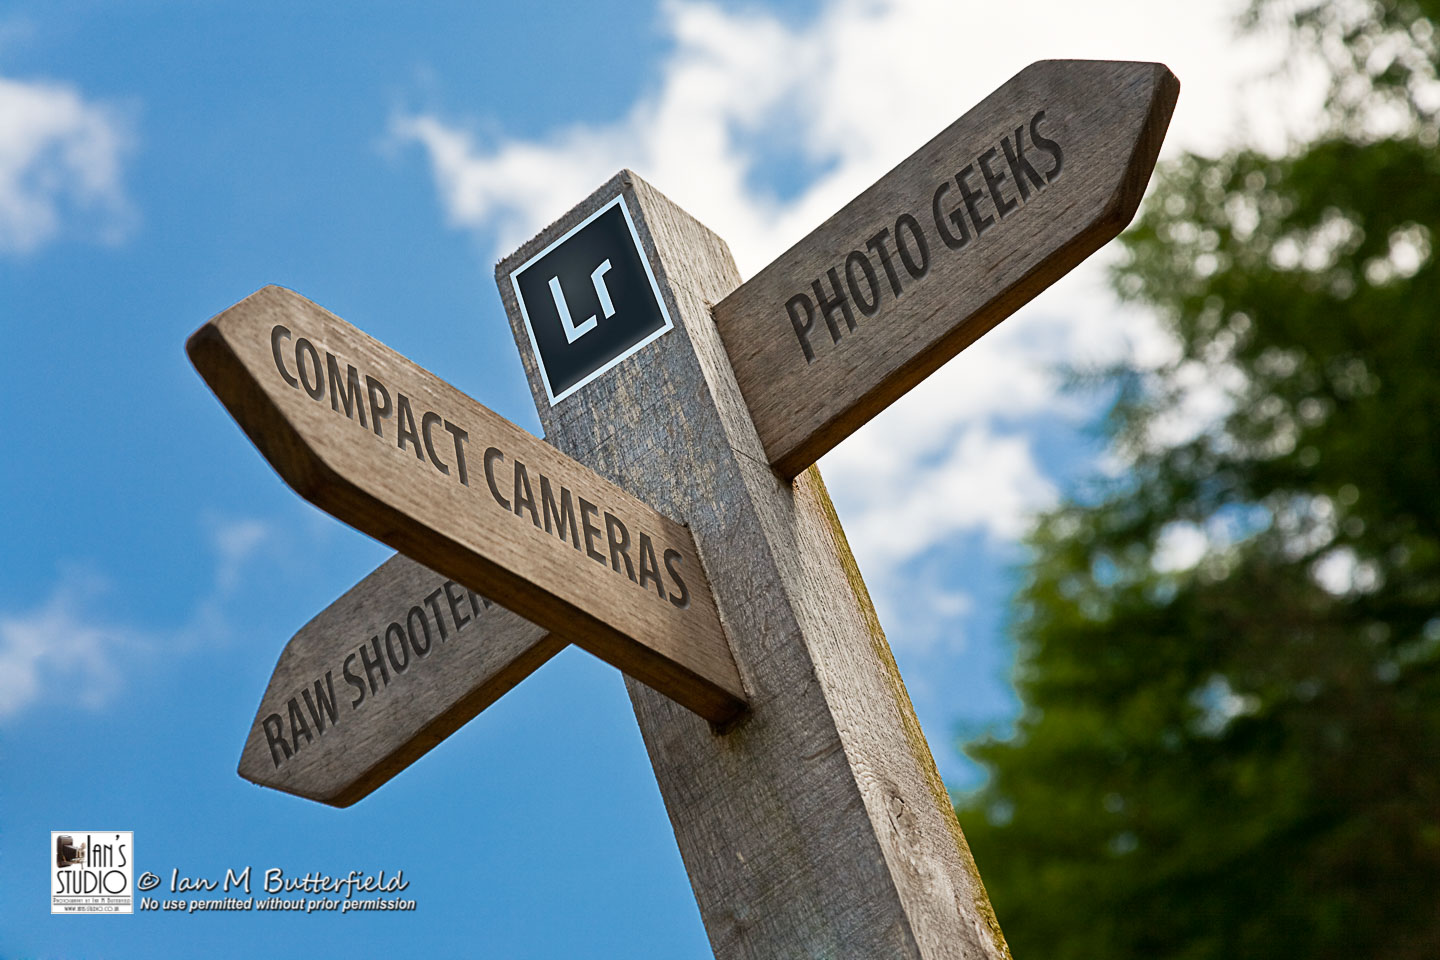 BLOG 24 Apr 2019: Buying Lightroom – a few pointers from Ian